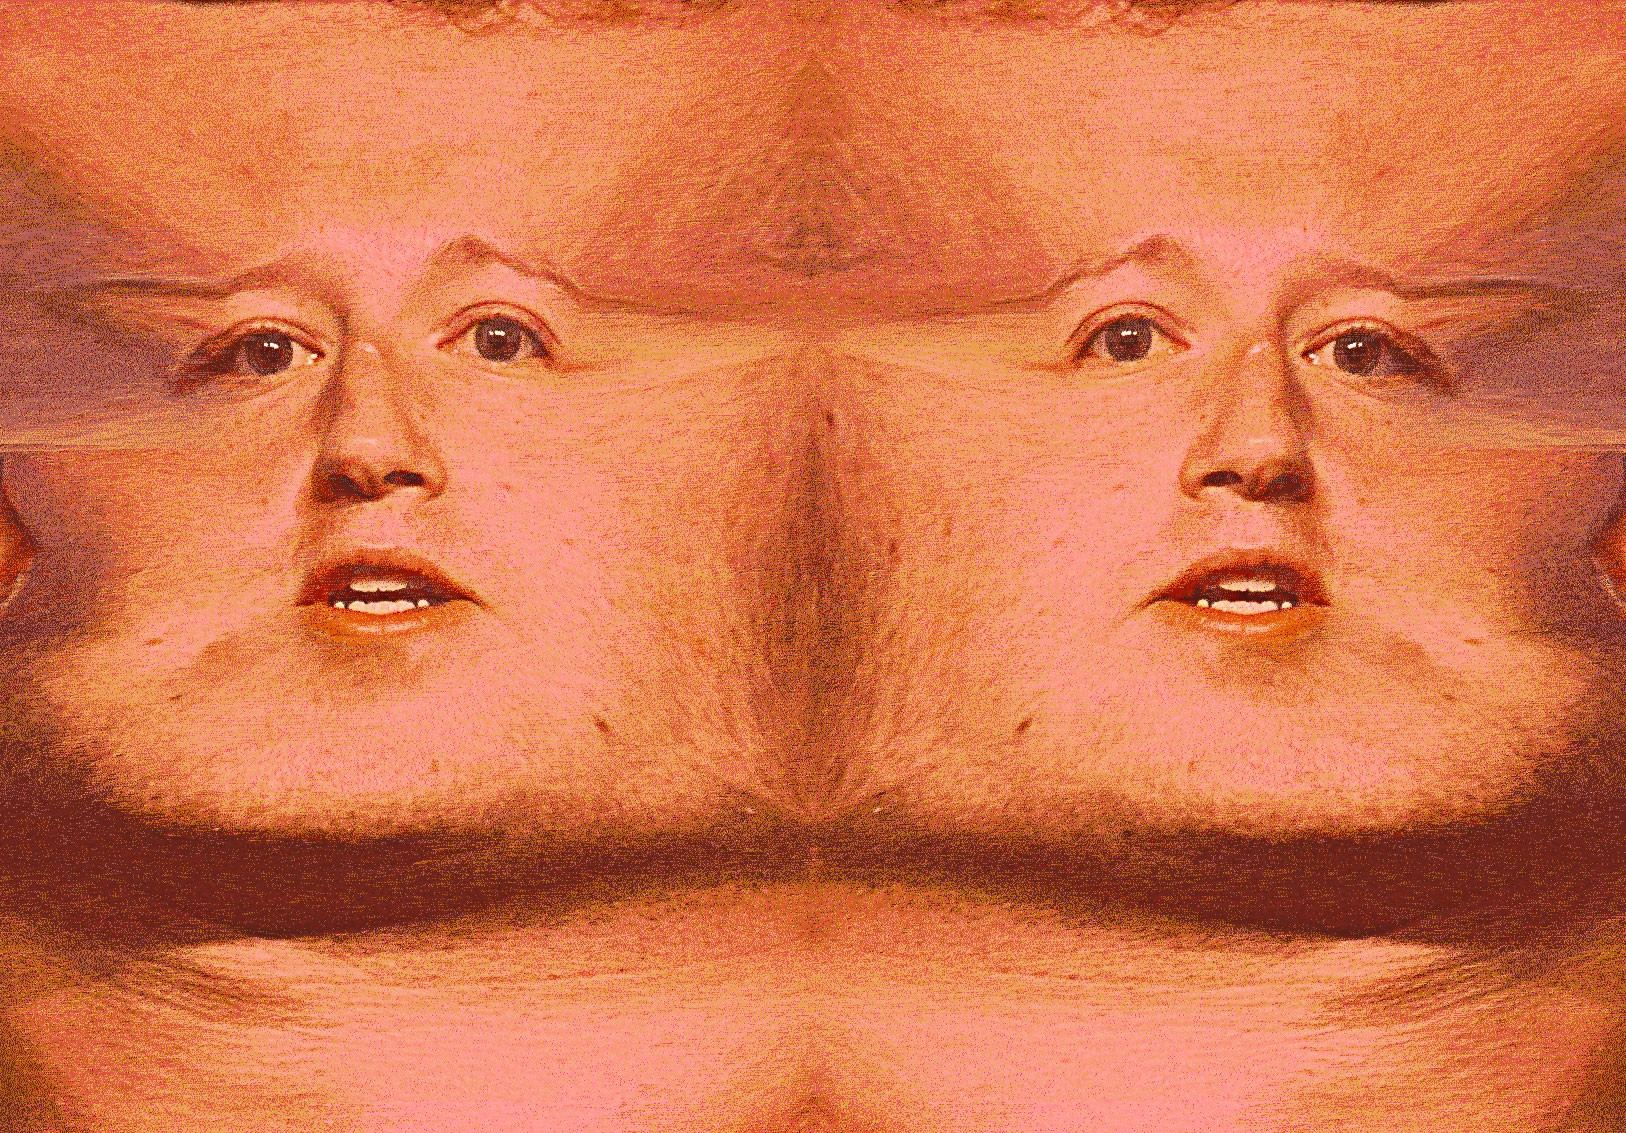 Photo-illustration where a portrait of Mark Zuckerberg has been manipulated by stretching skin, to imply close-up pornographic images, where human flesh covers the entire image frame.